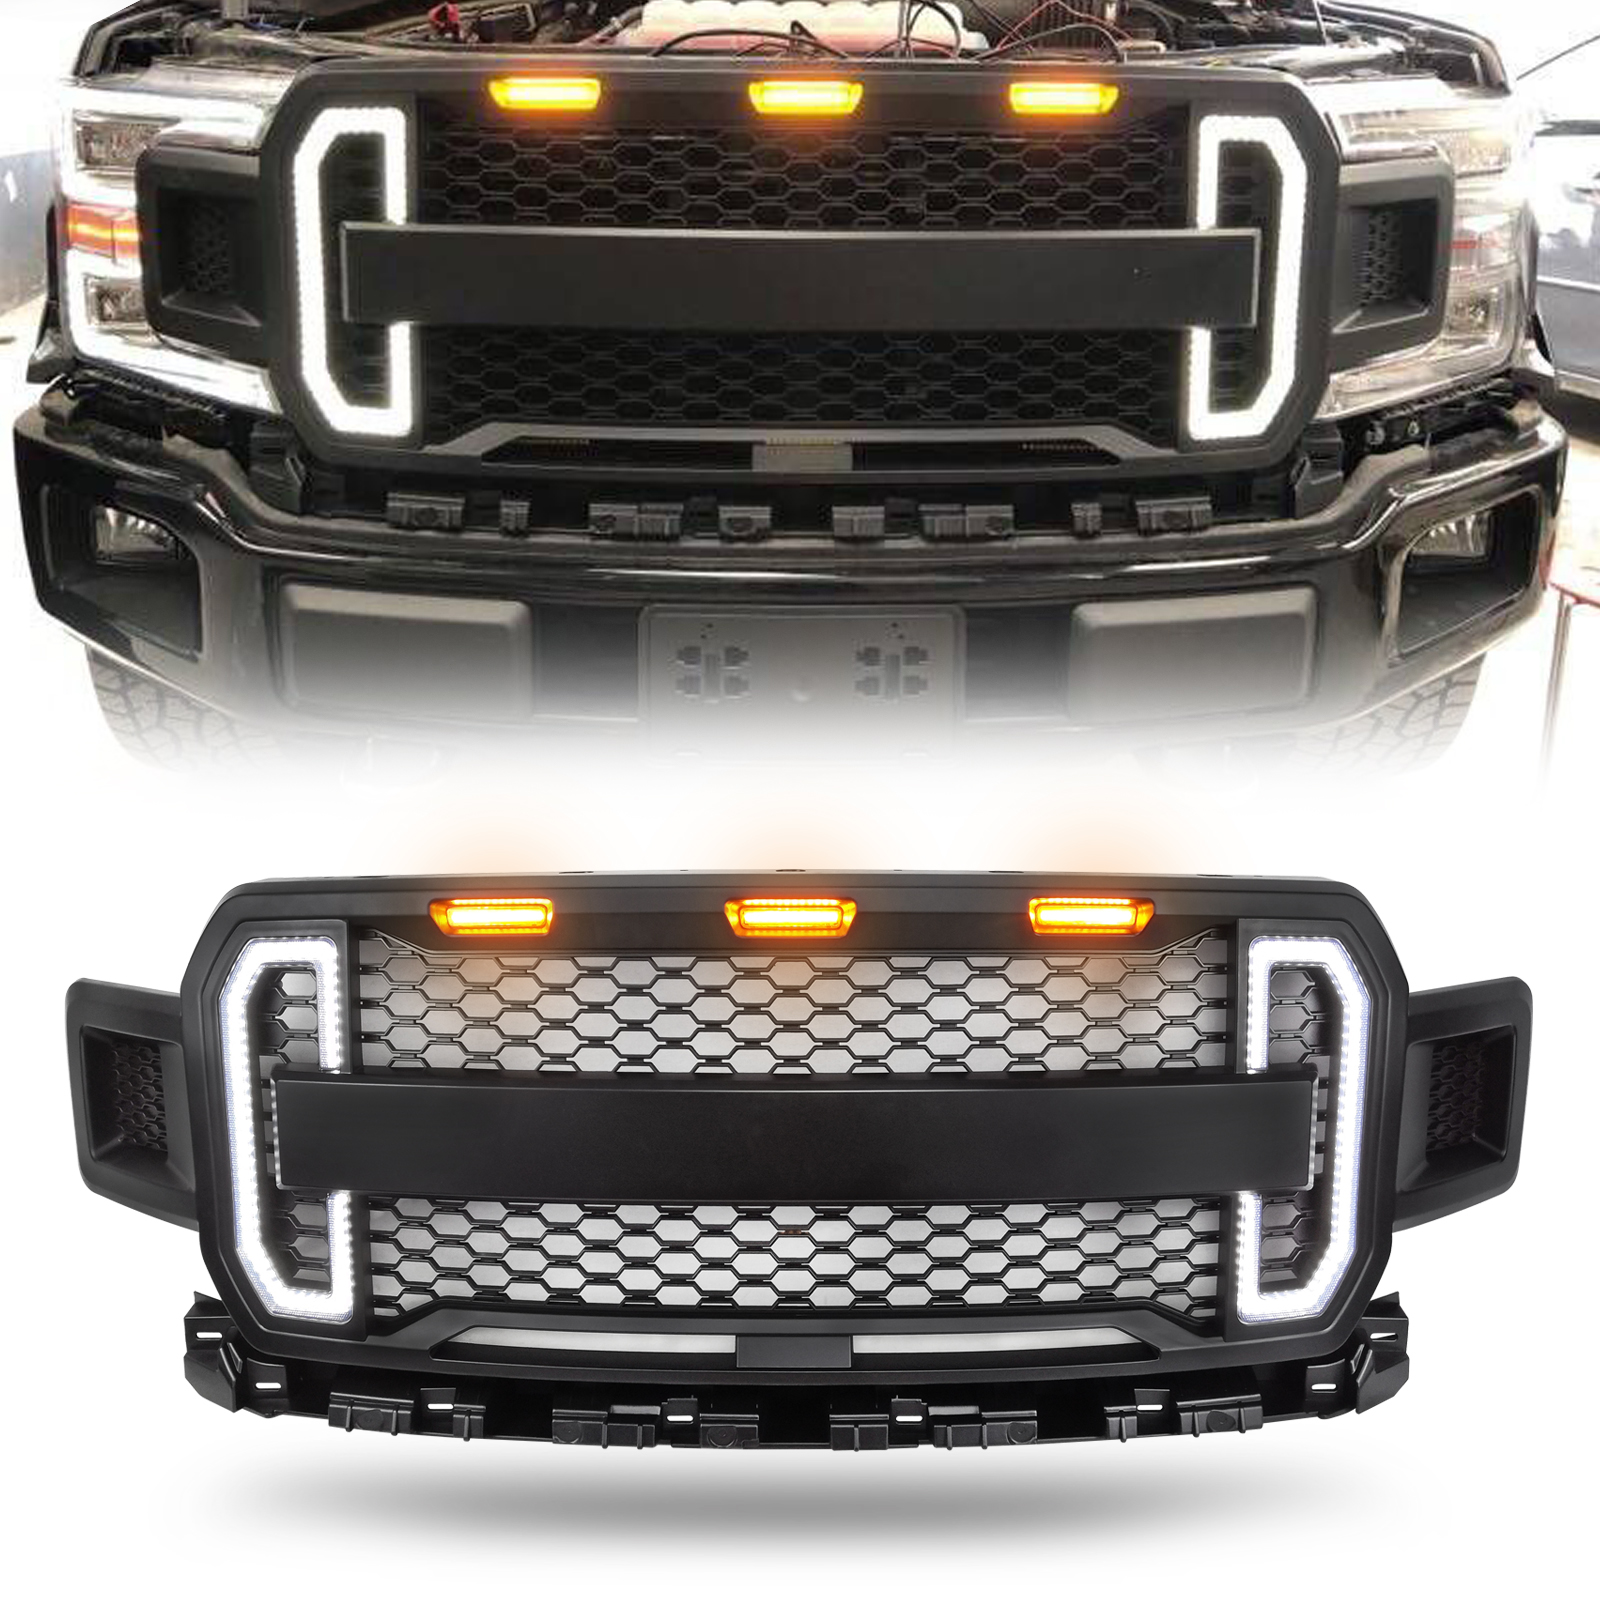 New Style Raptor Style Grill Grille For 2018 2019 Ford F150 ABS  with Amber Lights and Tunning LED Lights US Stock|Racing Grills| |  - title=